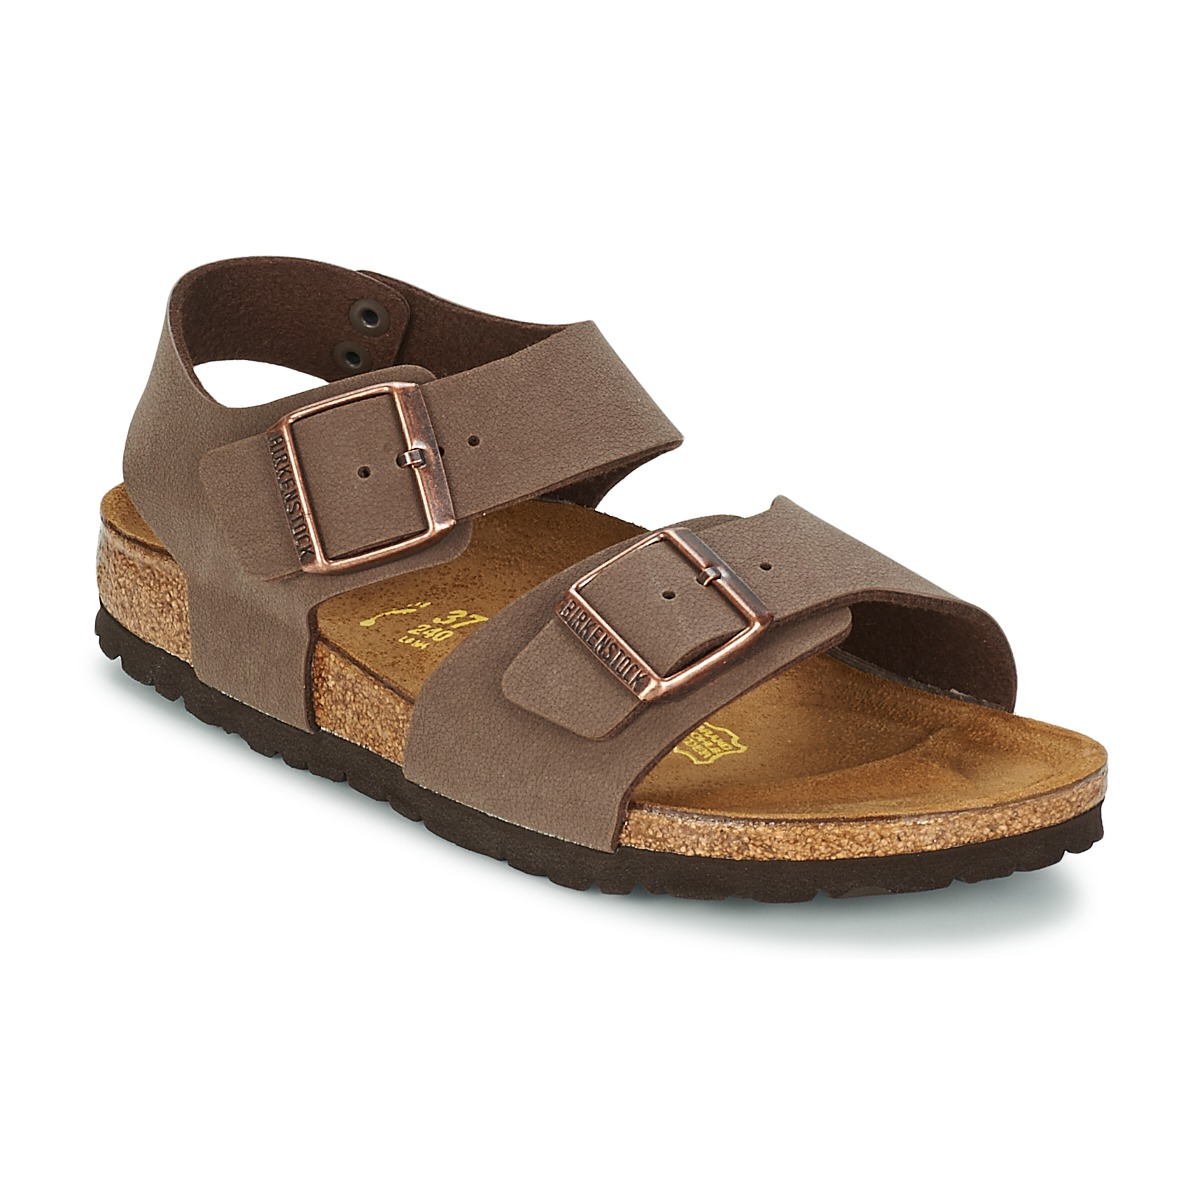 Birkenstock NEW YORK braun